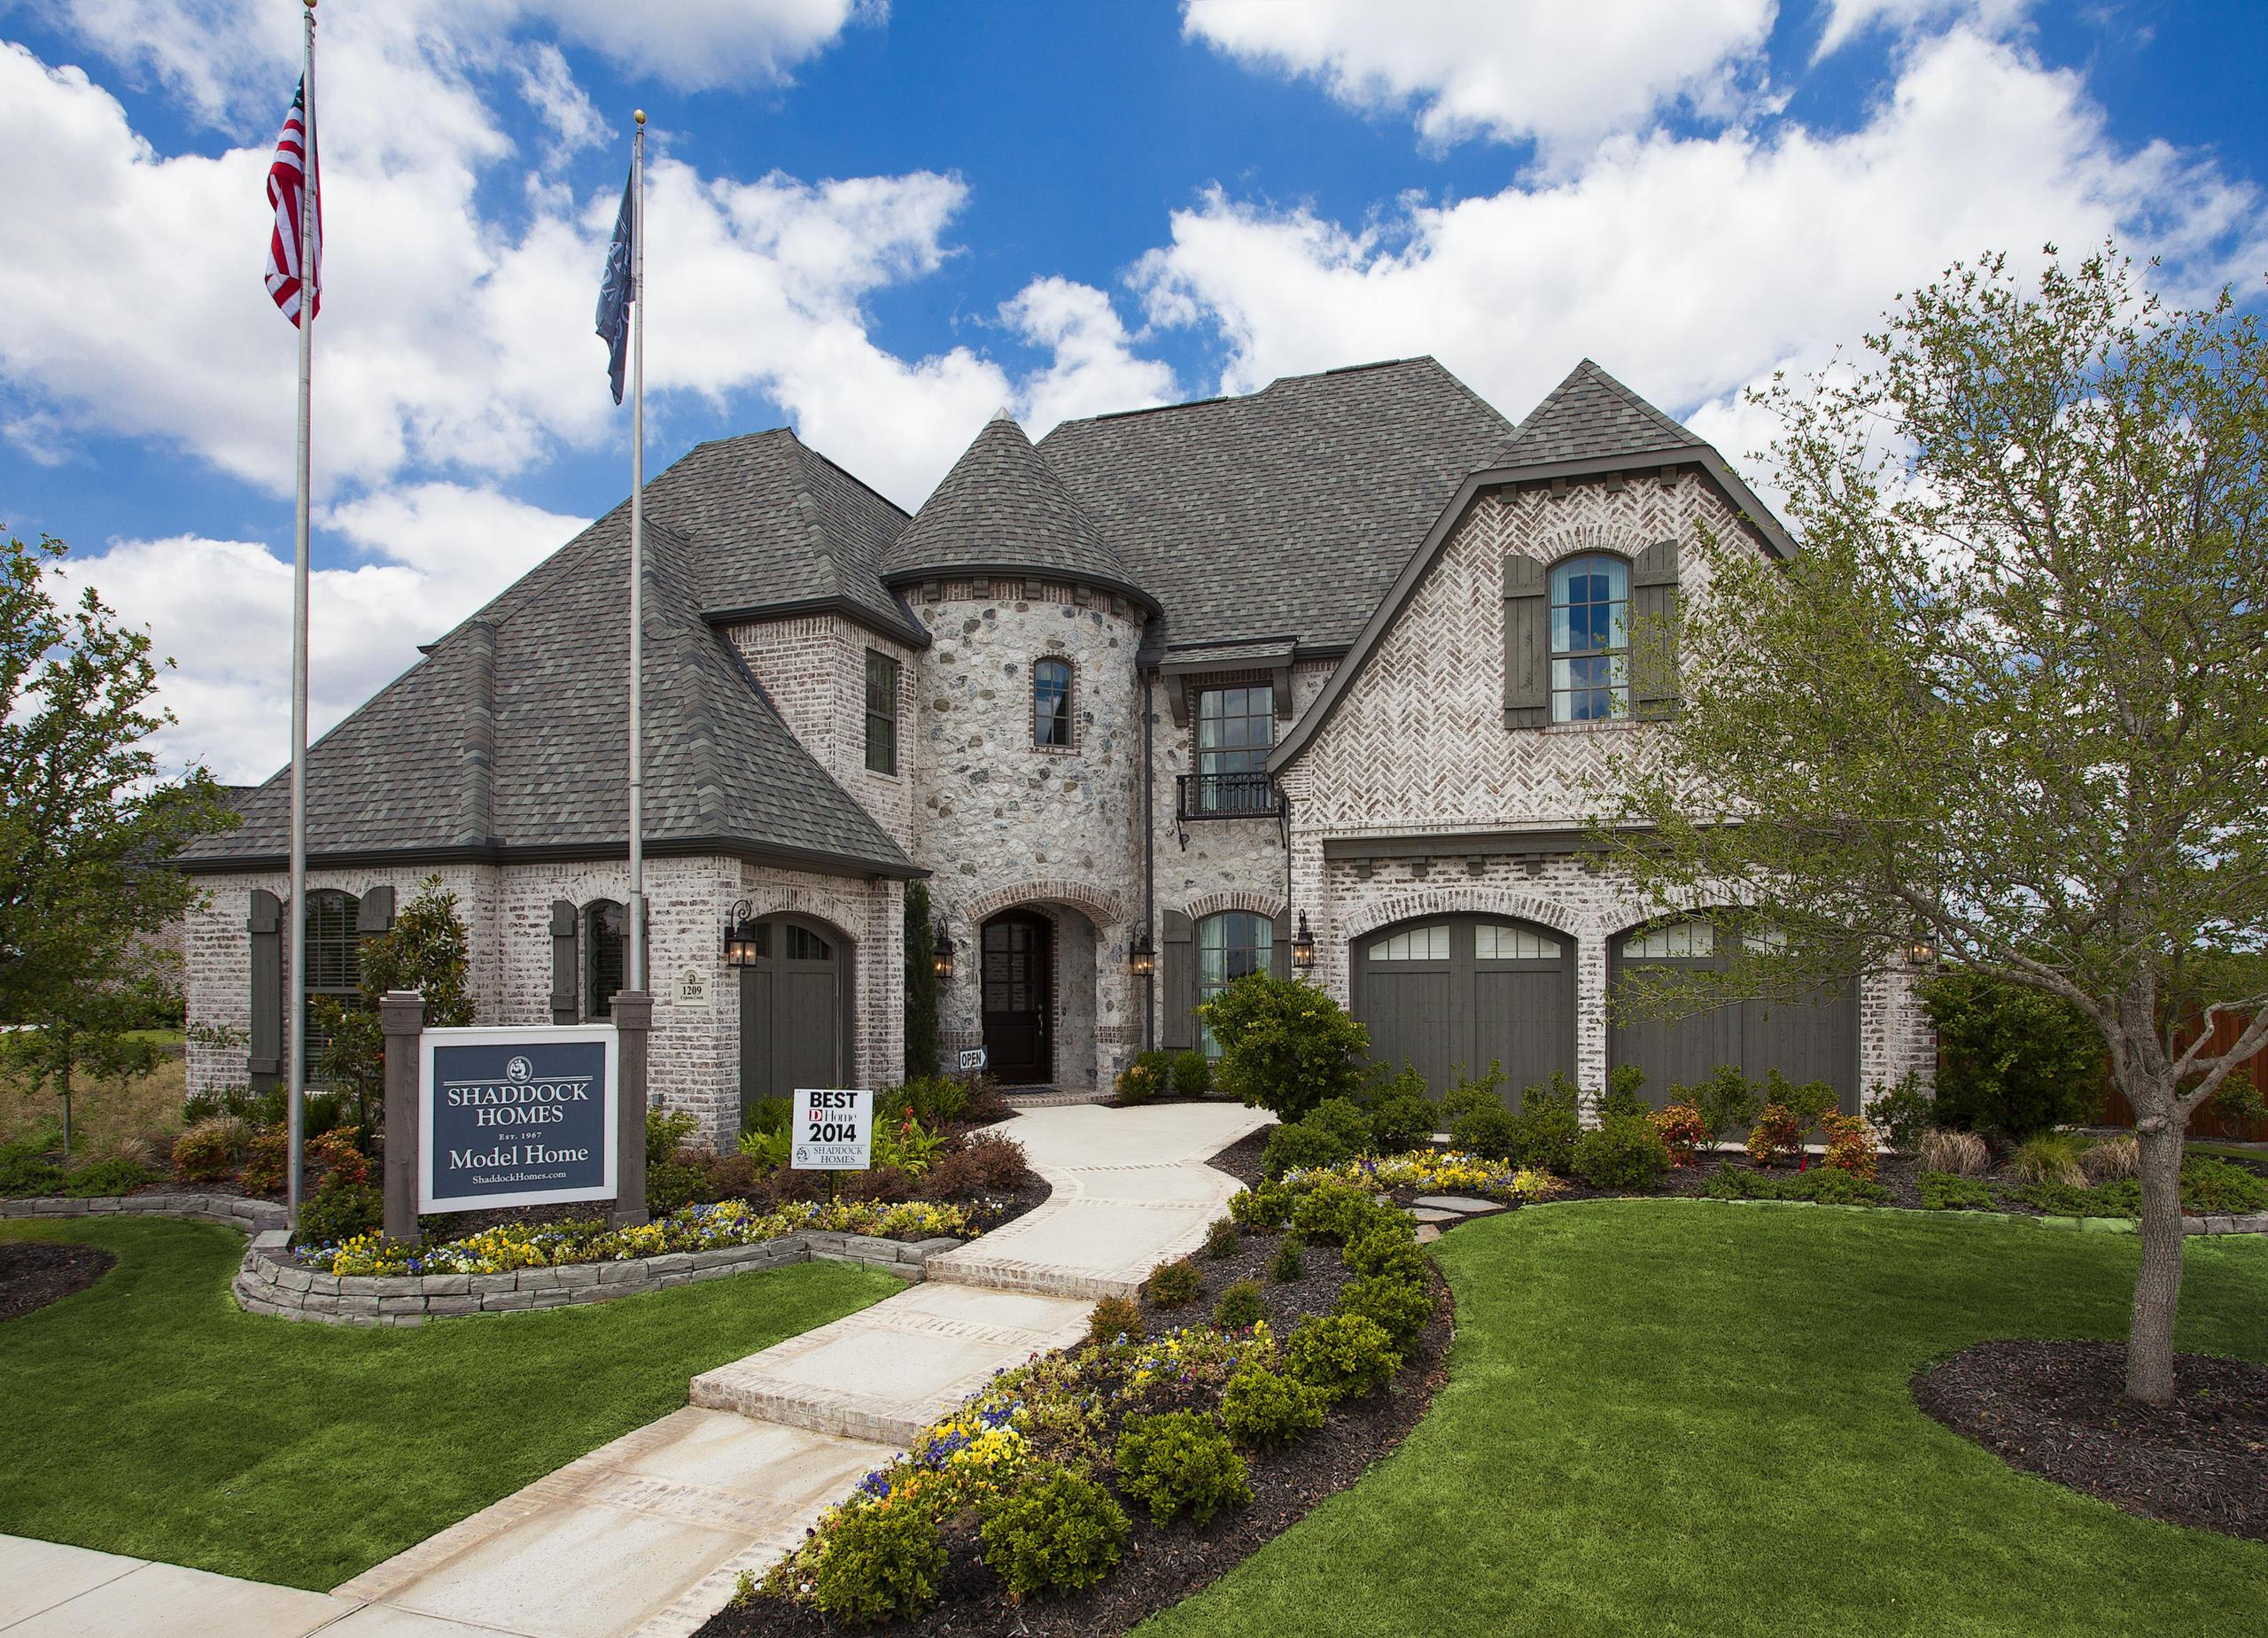 Marvelous Shaddock Homes Frisco TX Communities U0026 Homes For Sale | NewHomeSource ?